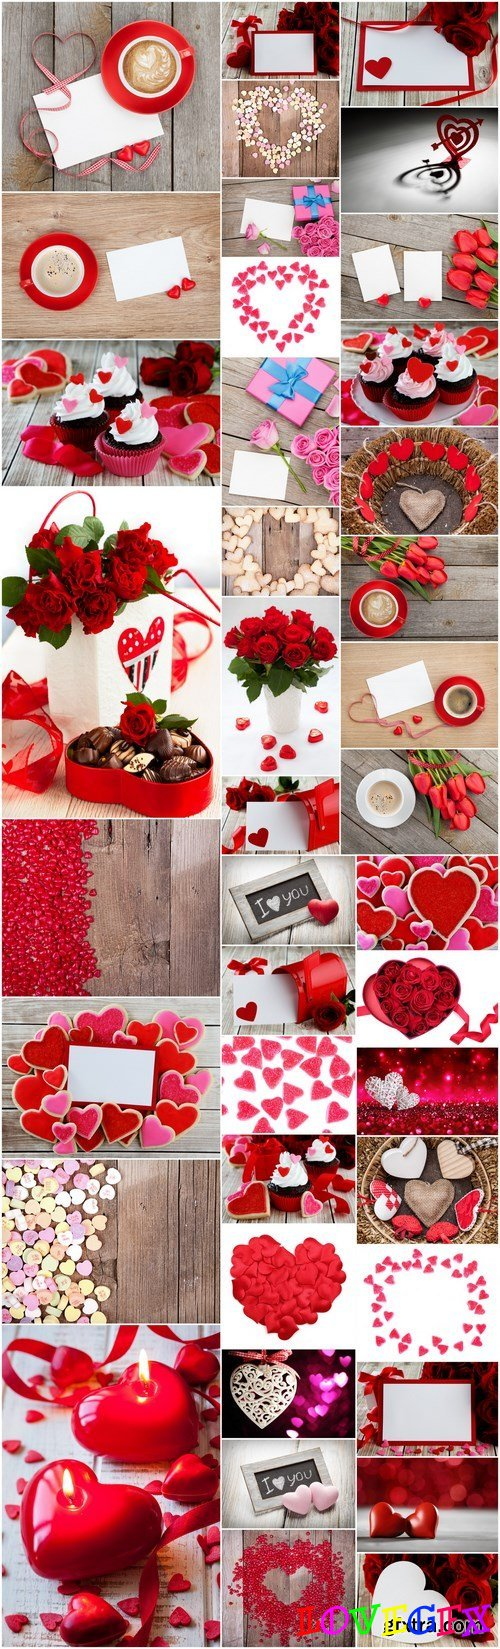 Love, Romance, Heart, Gifts - Valentines Day part 5 - Set of 40xUHQ JPEG Professional Stock Images